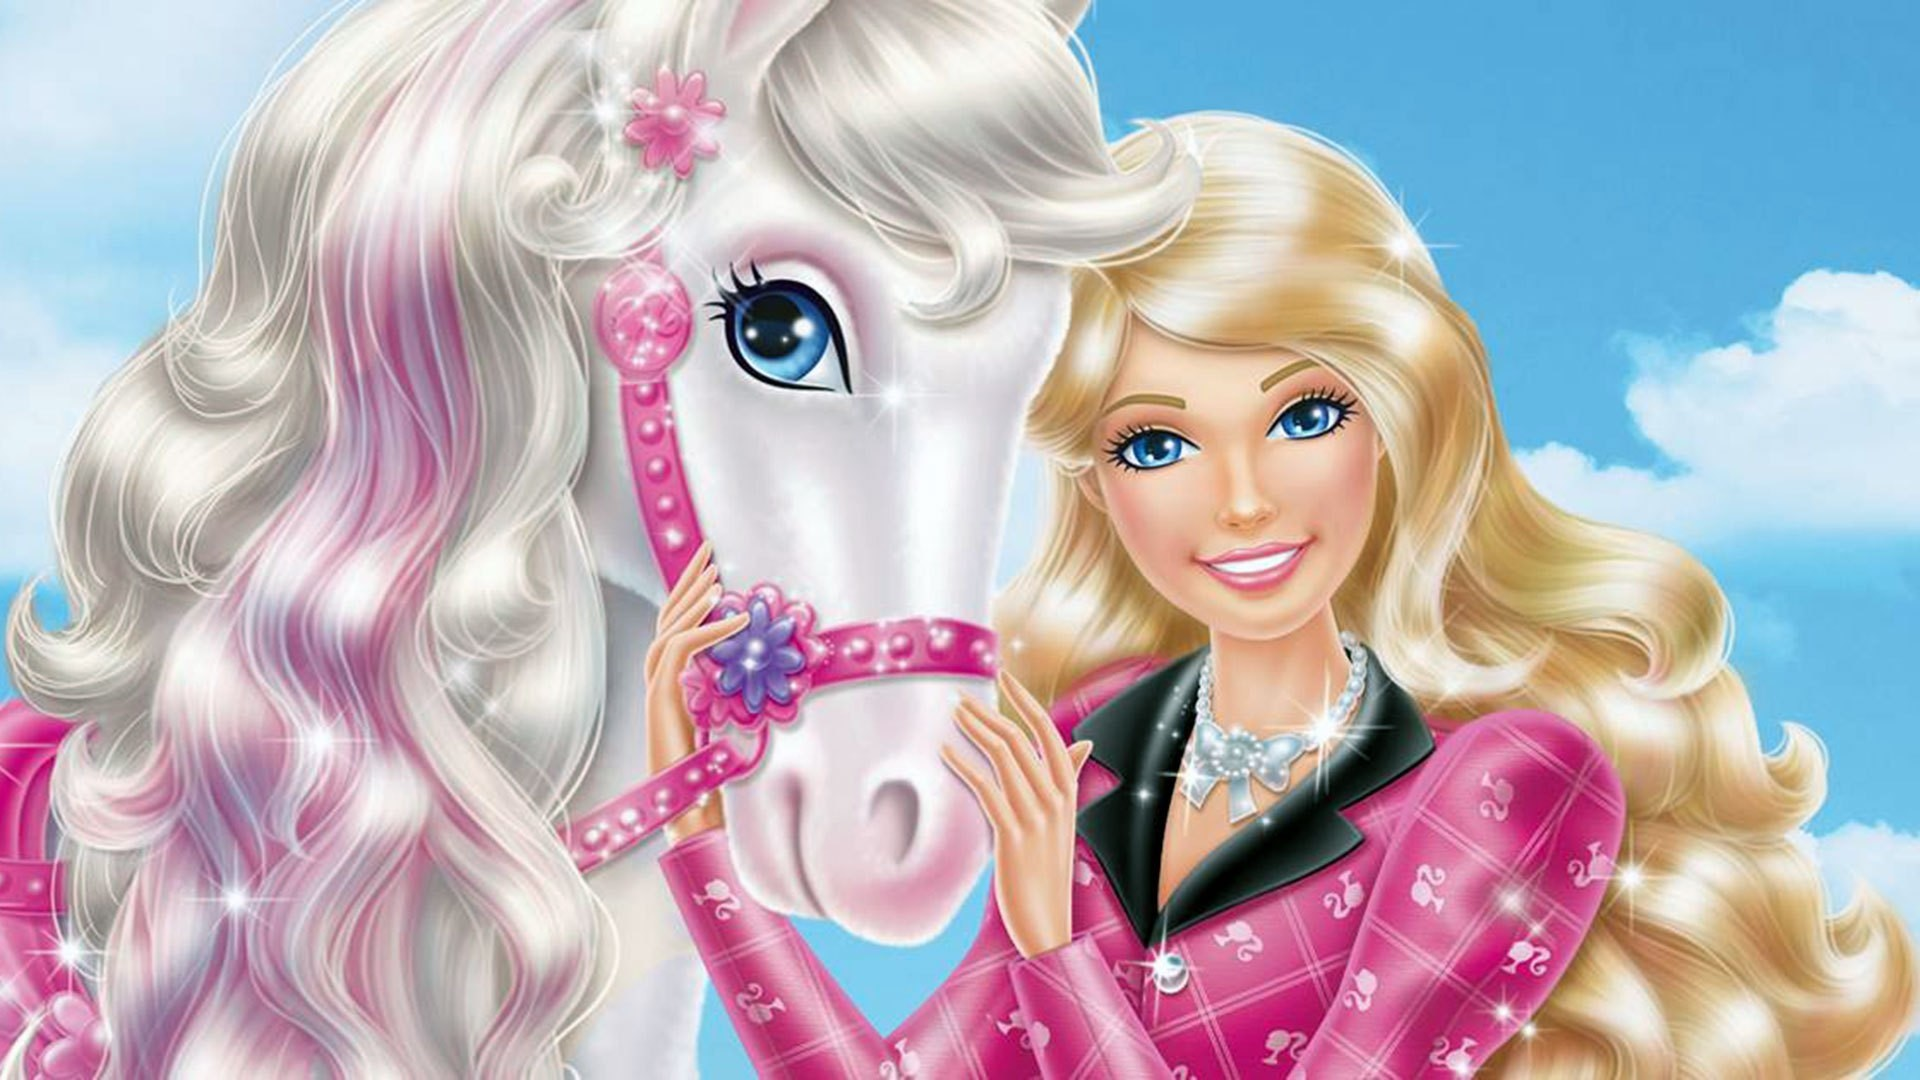 1920x1080 1920x1080 Barbie Wallpapers Free Download